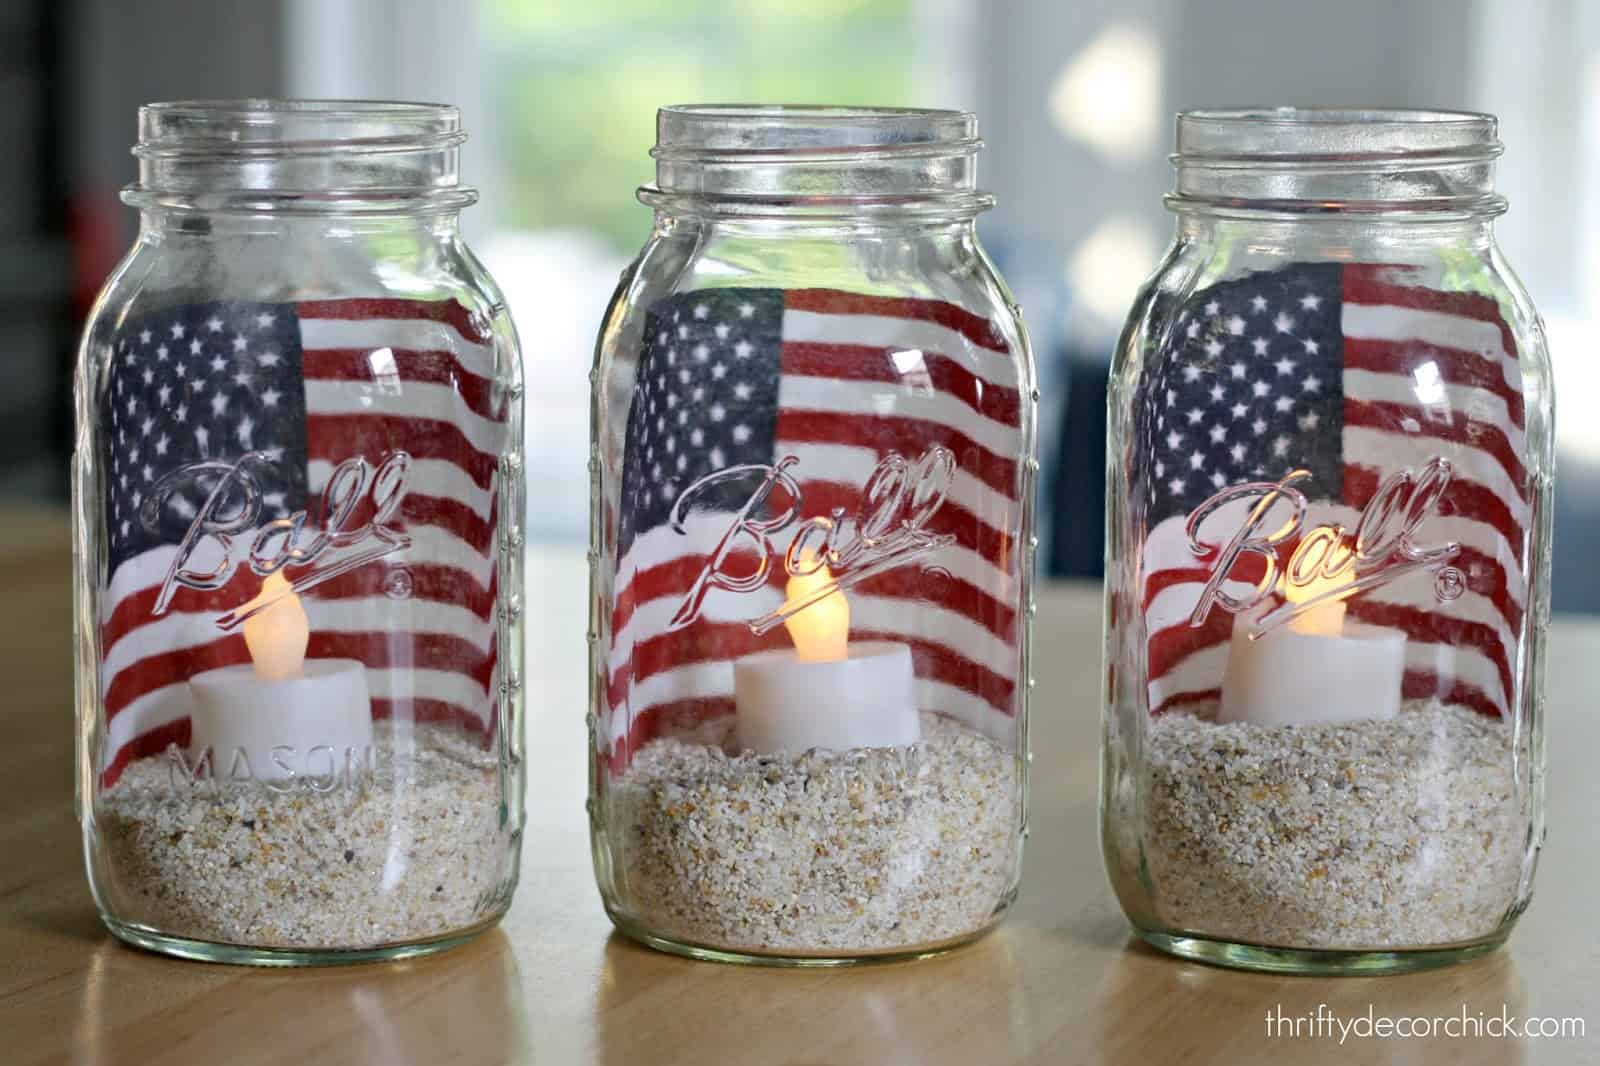 Sandy fourth of july lantern jars